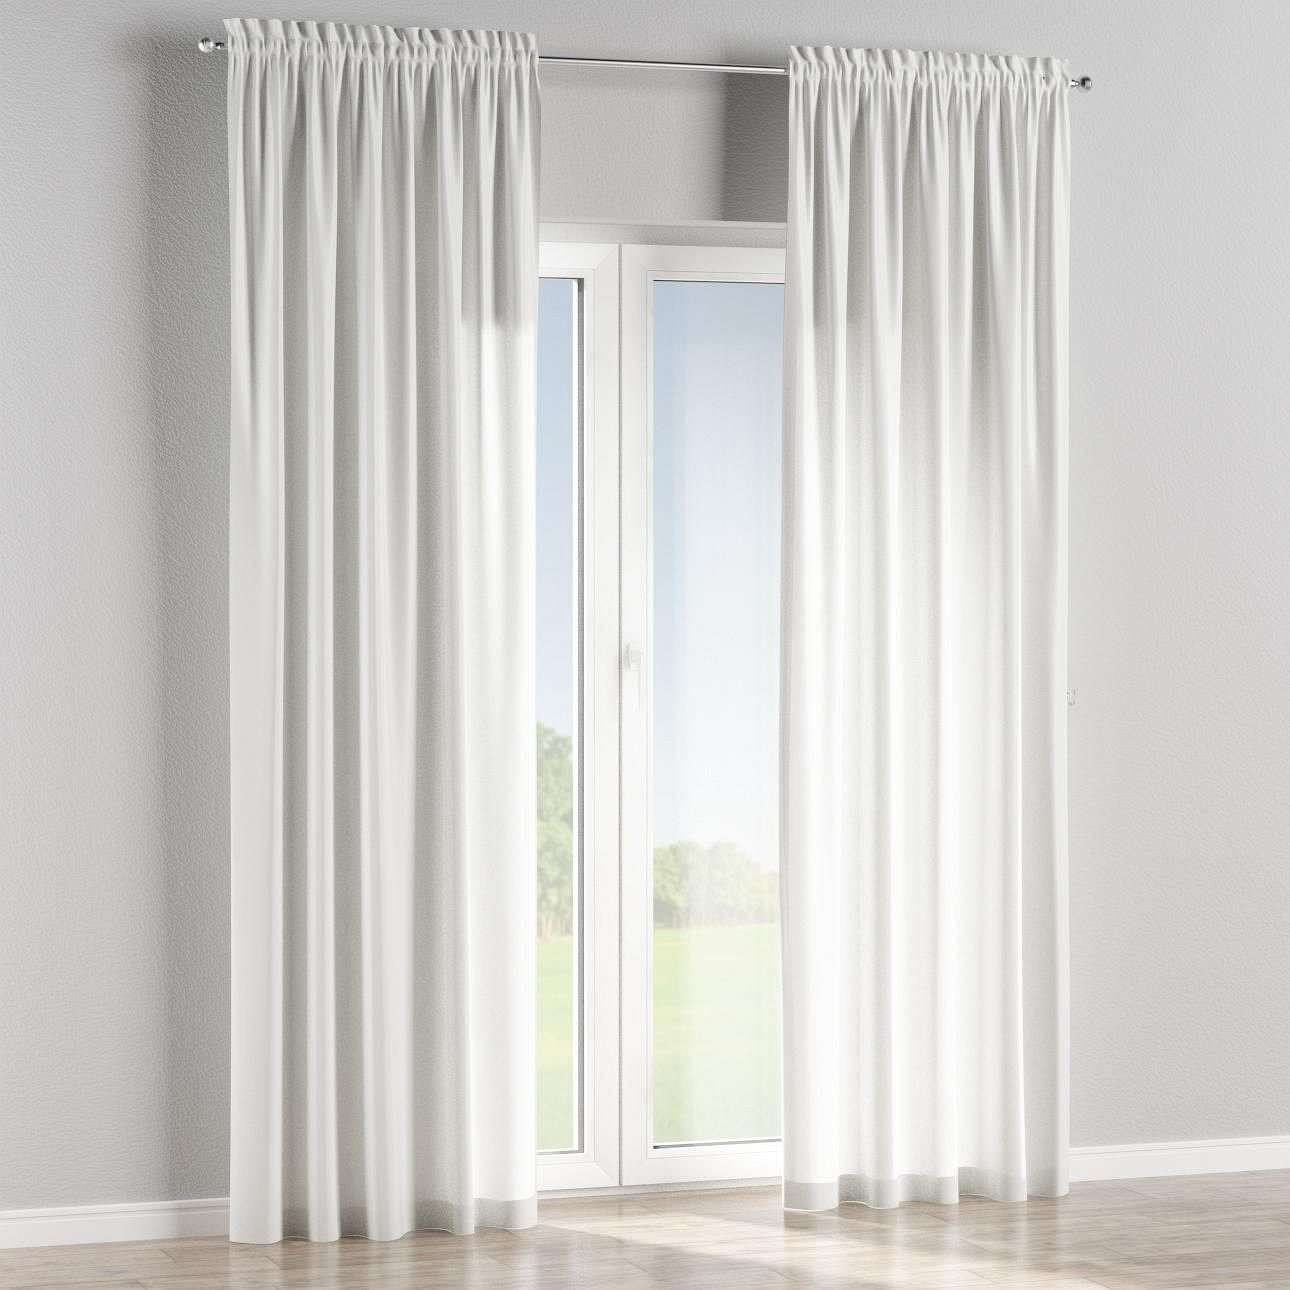 Slot and frill curtains in collection Freestyle, fabric: 137-63